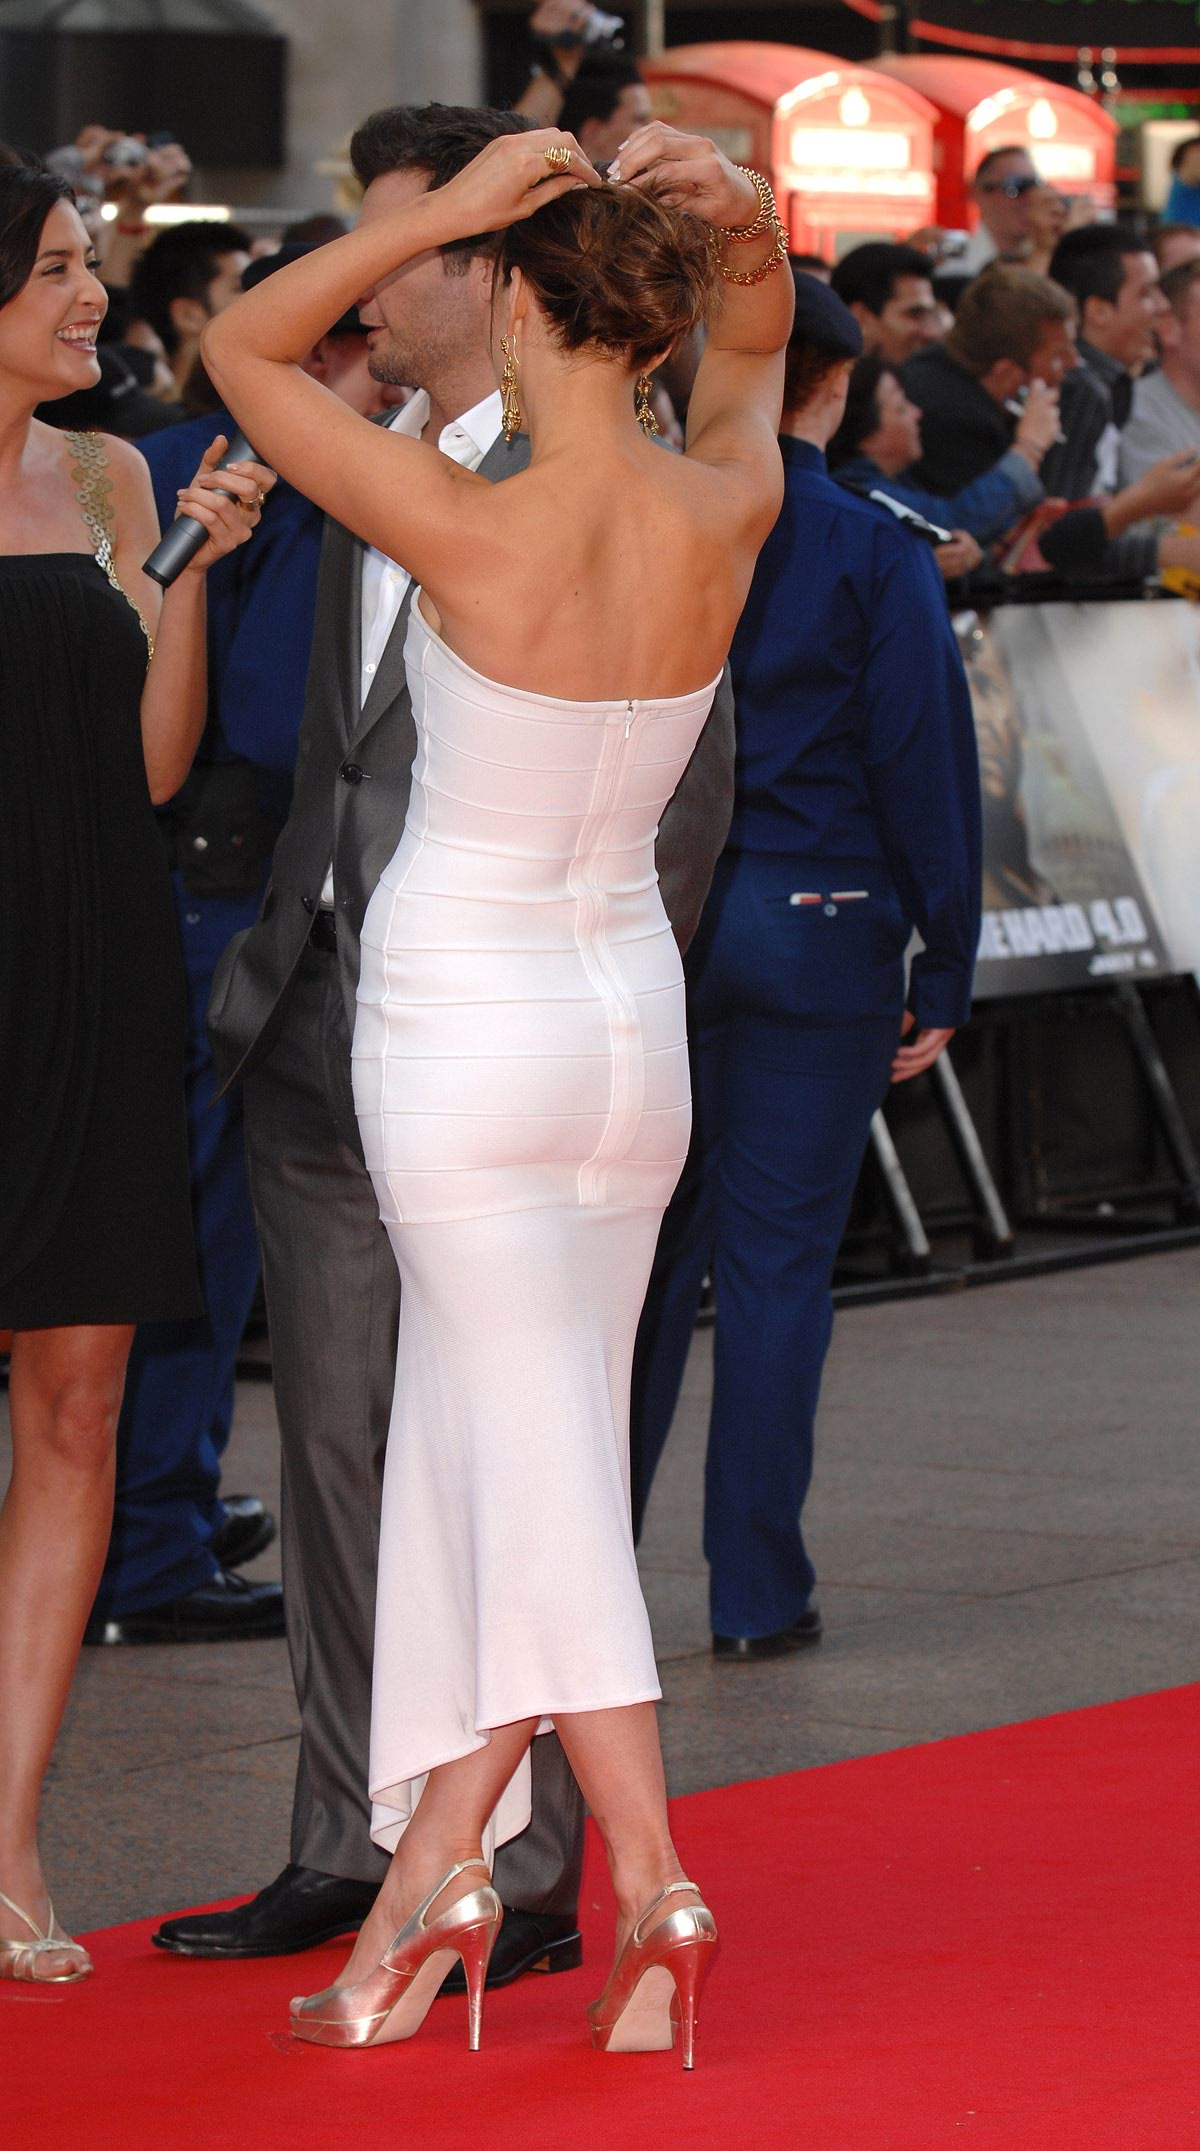 Sexy butt pictures-7871